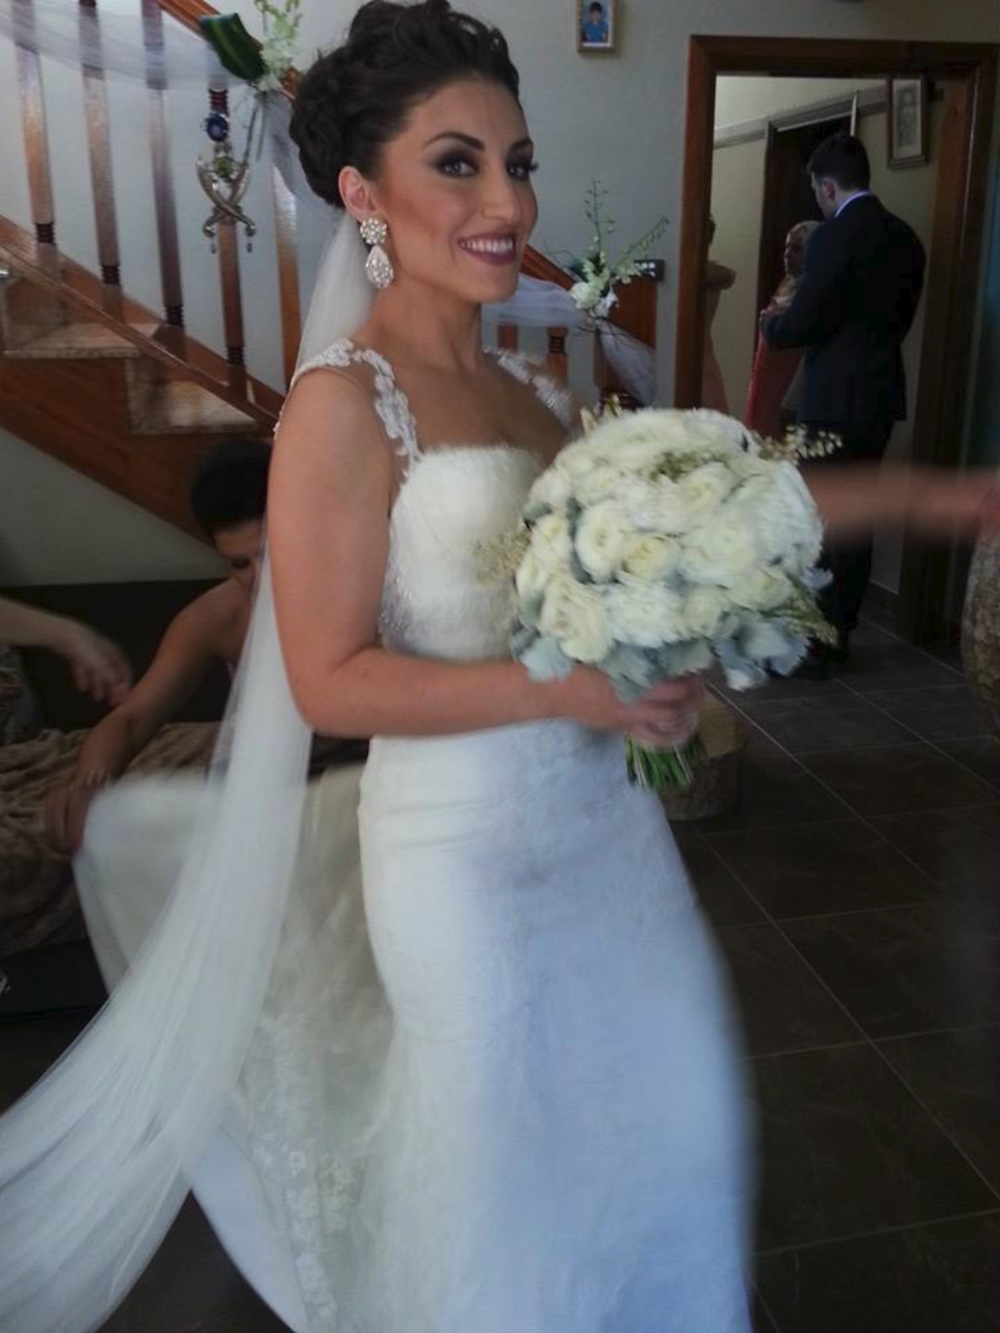 Nahida wears a custom-designed pair of Edera Jewelry earrings on her wedding day.